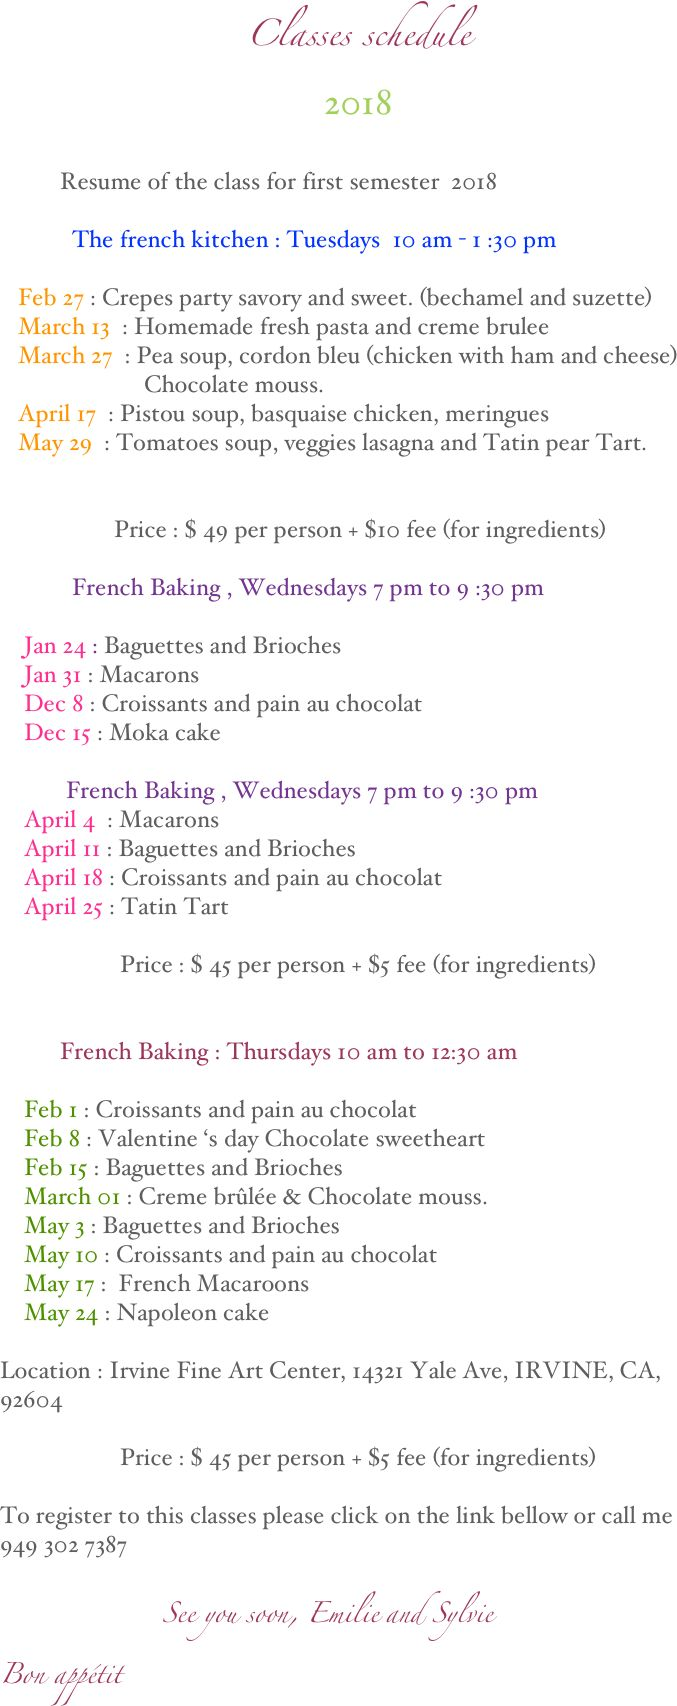 Classes schedule 2018 Resume of the class for first semester 2018 The french kitchen : Tuesdays 10 am - 1 :30 pm Feb 27 : Crepes party savory and sweet. (bechamel and suzette) March 13 : Homemade fresh pasta and creme brulee March 27 : Pea soup, cordon bleu (chicken with ham and cheese) Chocolate mouss. April 17 : Pistou soup, basquaise chicken,...